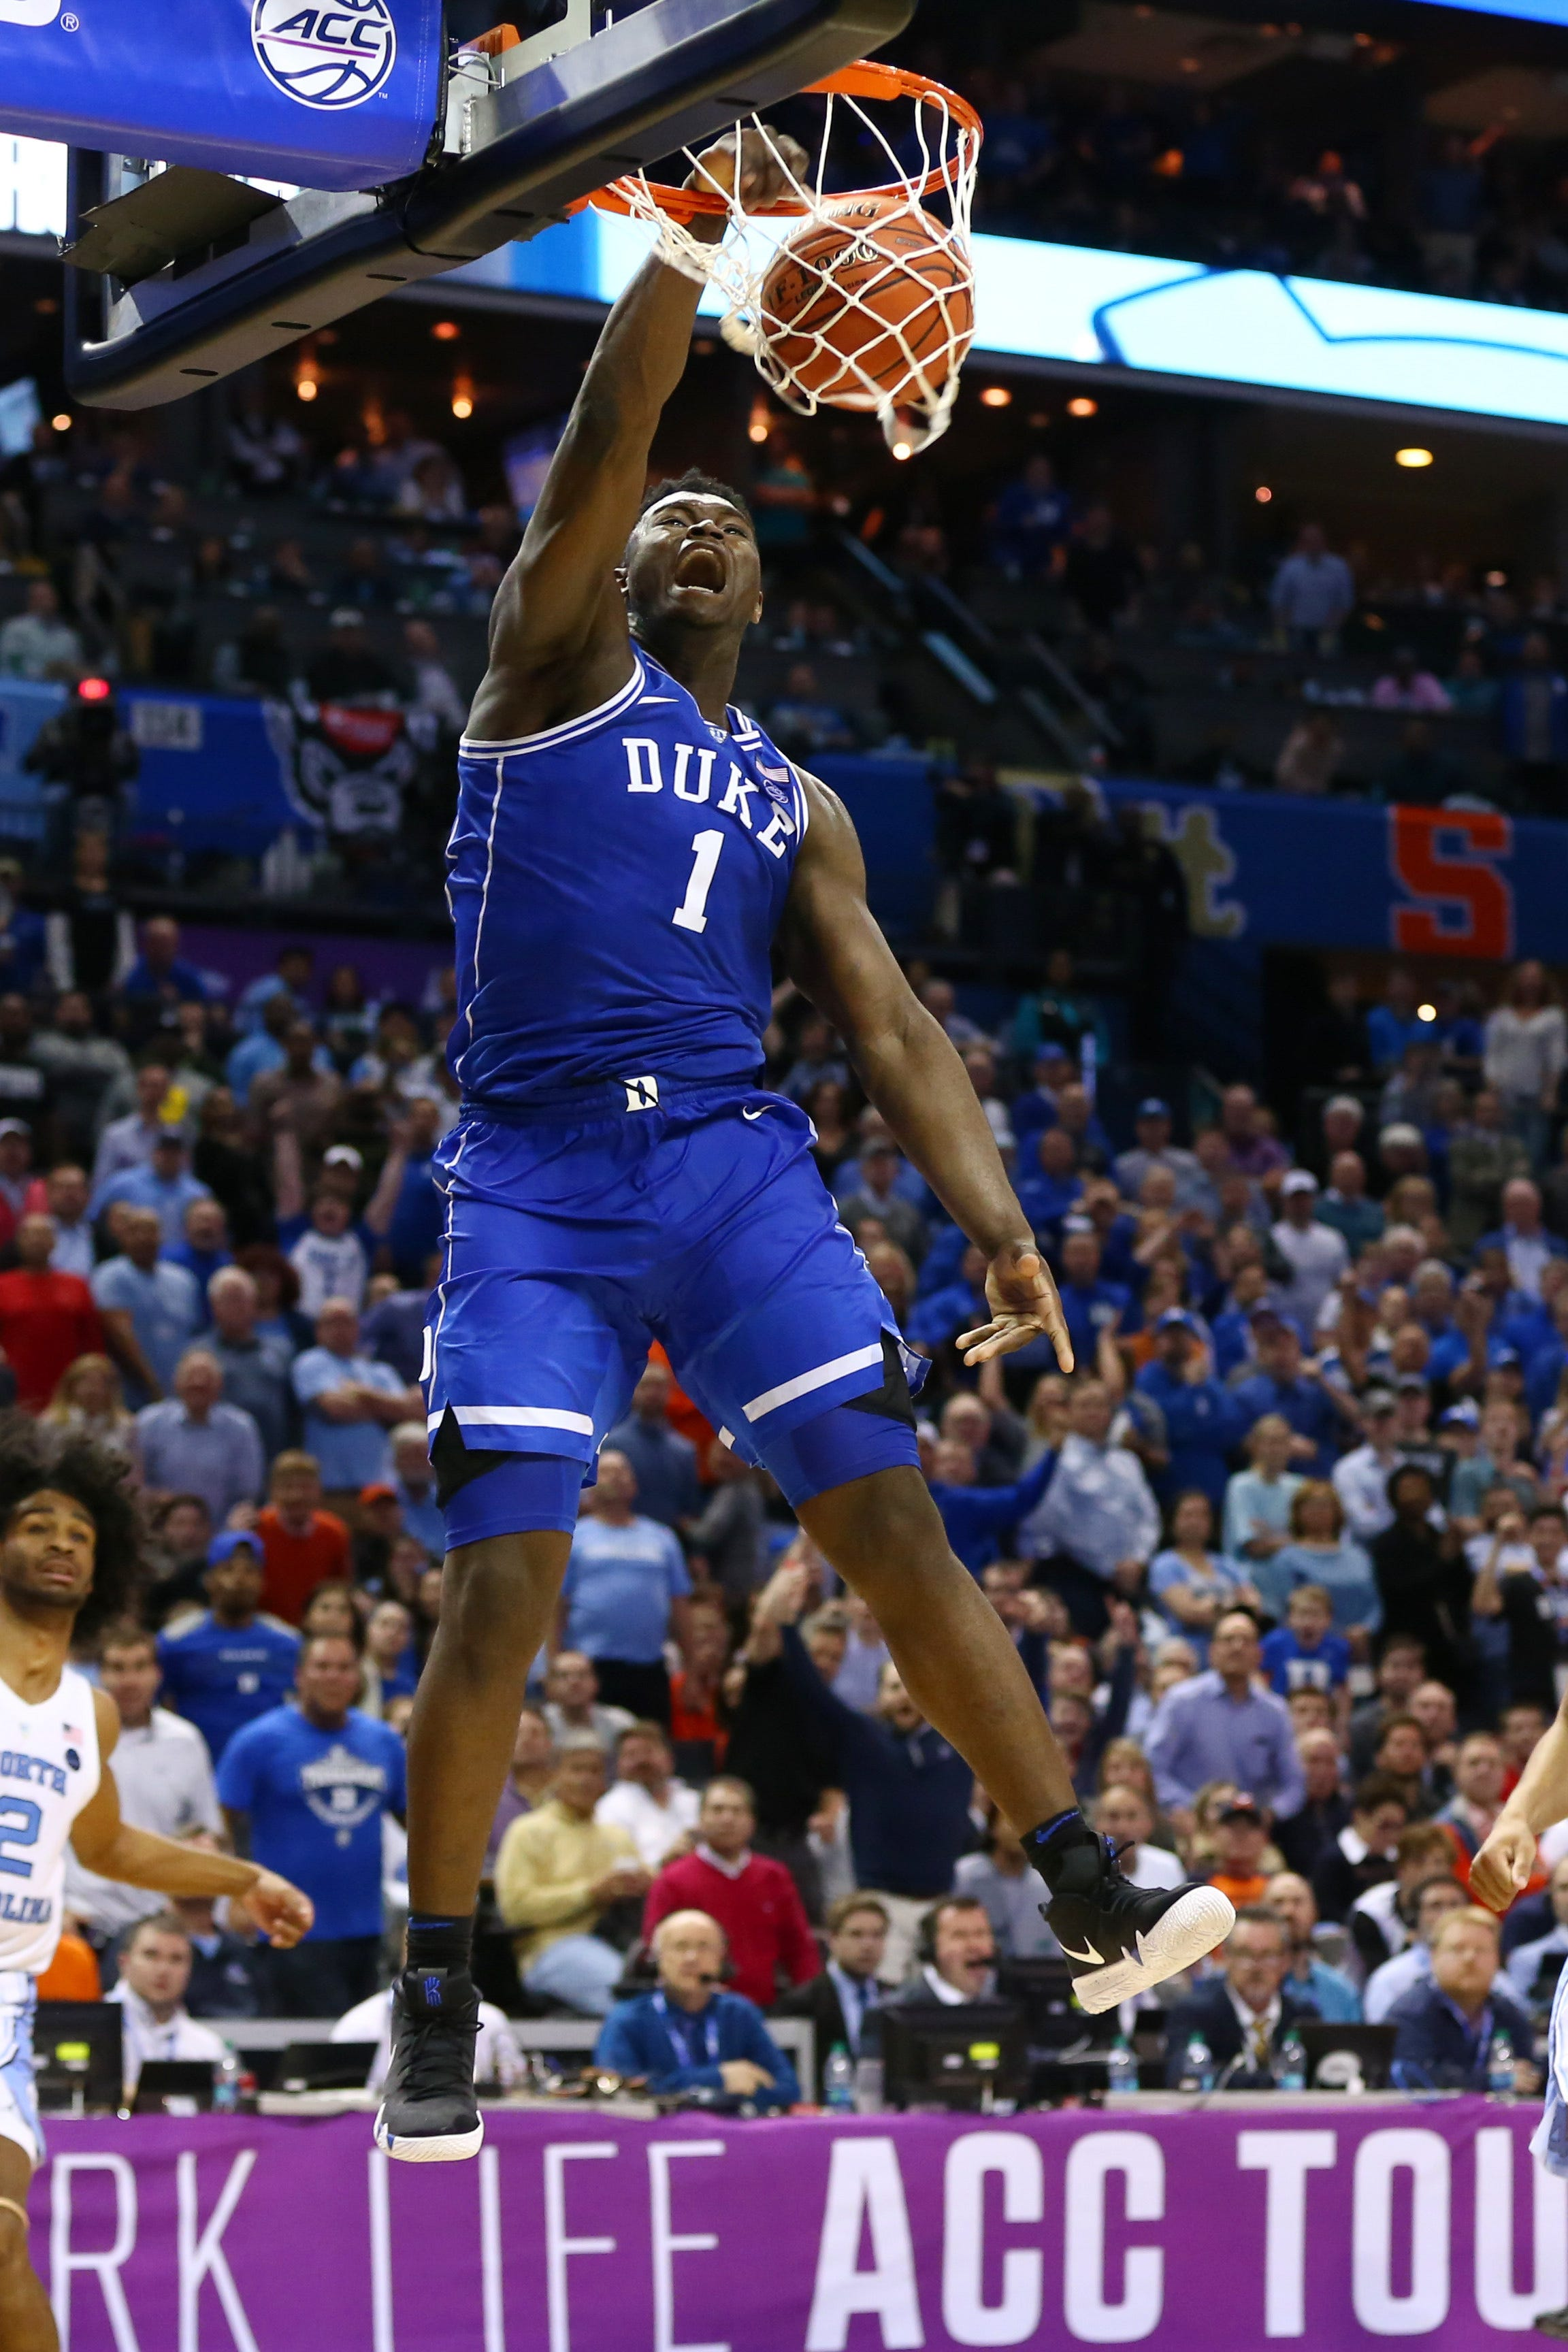 Zion Williamson helped lead Duke to the ACC tournament title after returning from a knee injury.